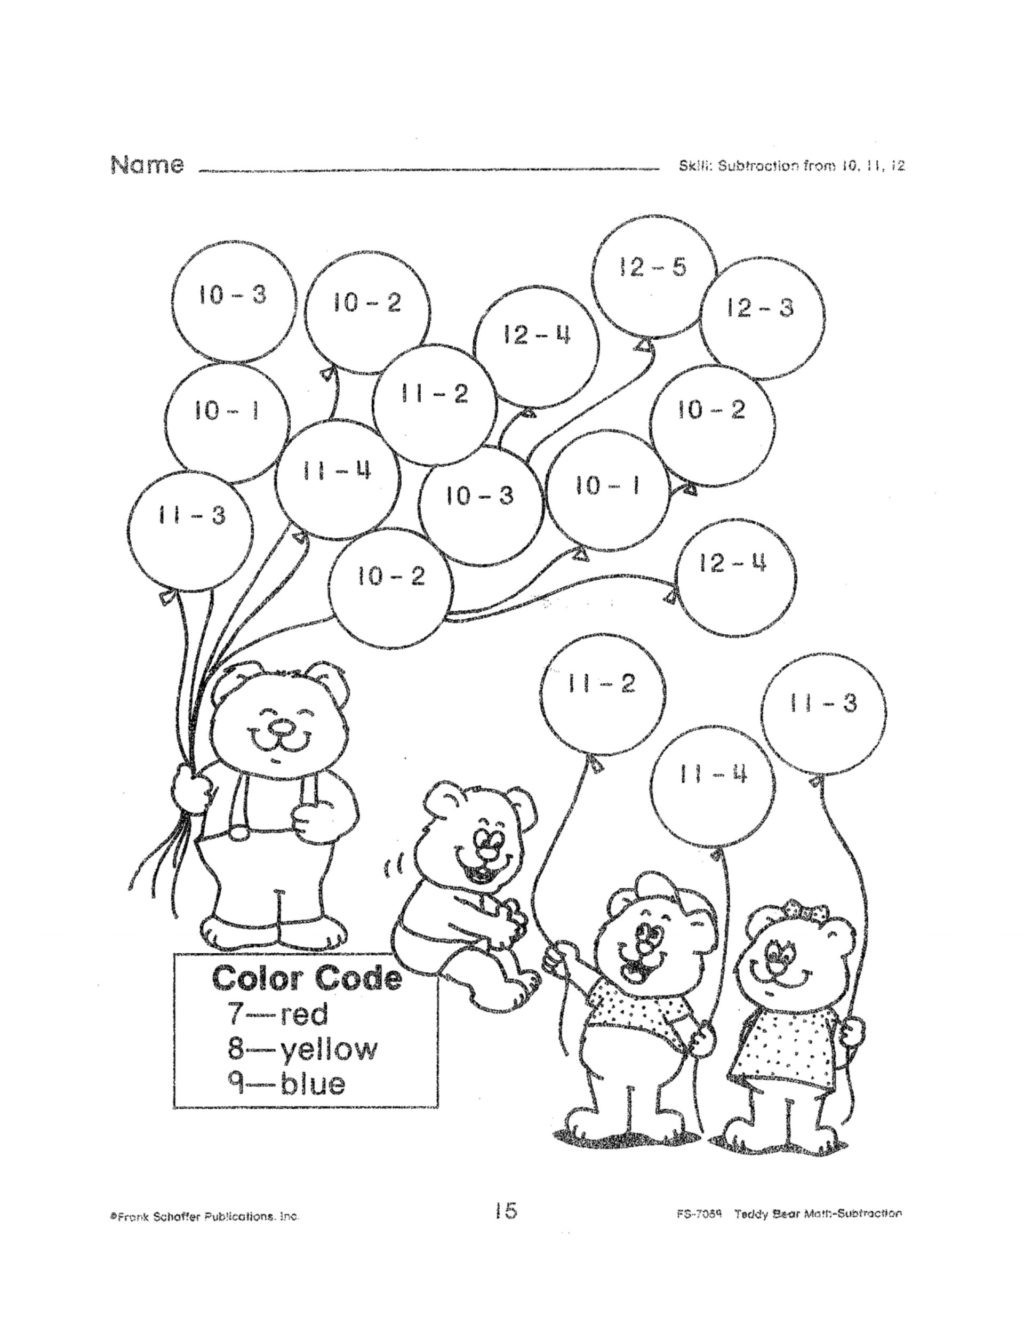 6th Grade Math Puzzle Worksheets Worksheet Free Printable Math Puzzles for Second